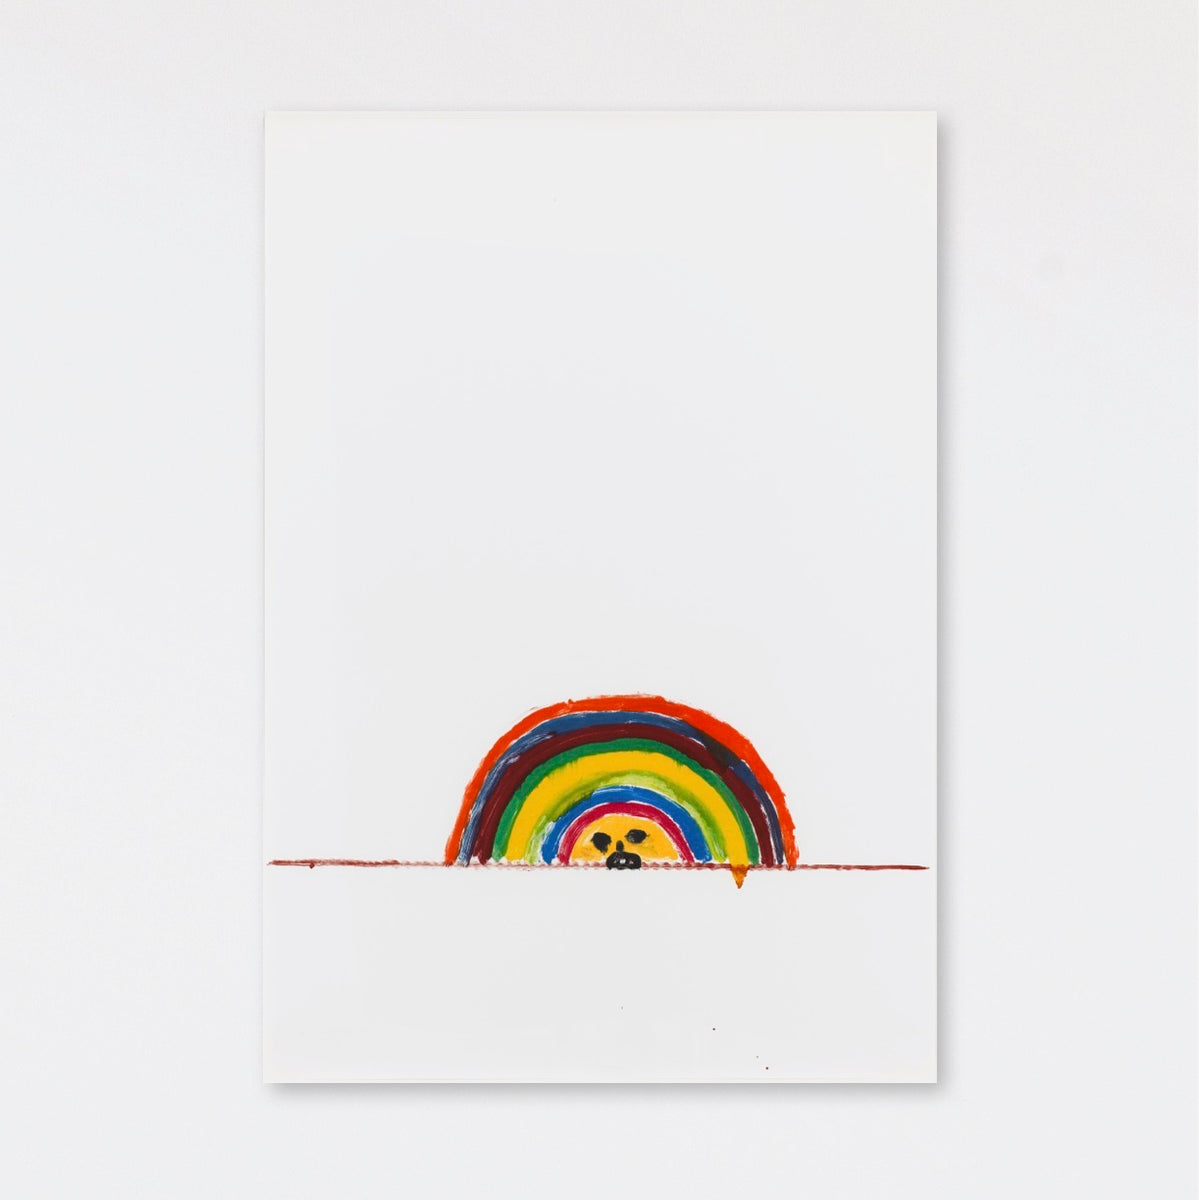 Untitled (Rainbow) (2007)